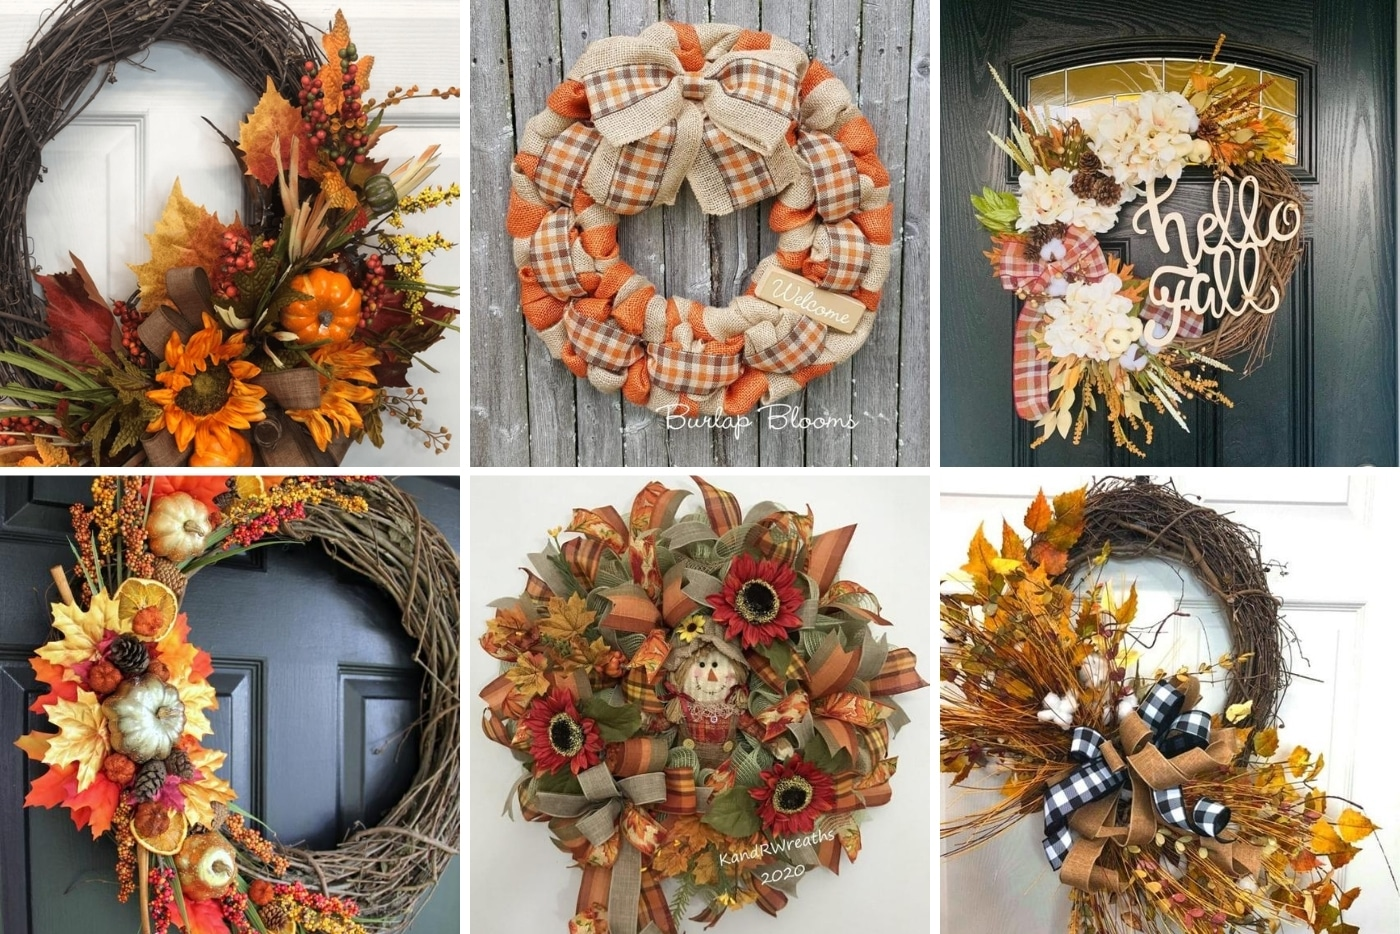 17 Inspiring Fall Wreaths For The Front Door How To Make Wreaths Wreath Making For Craftpreneurs